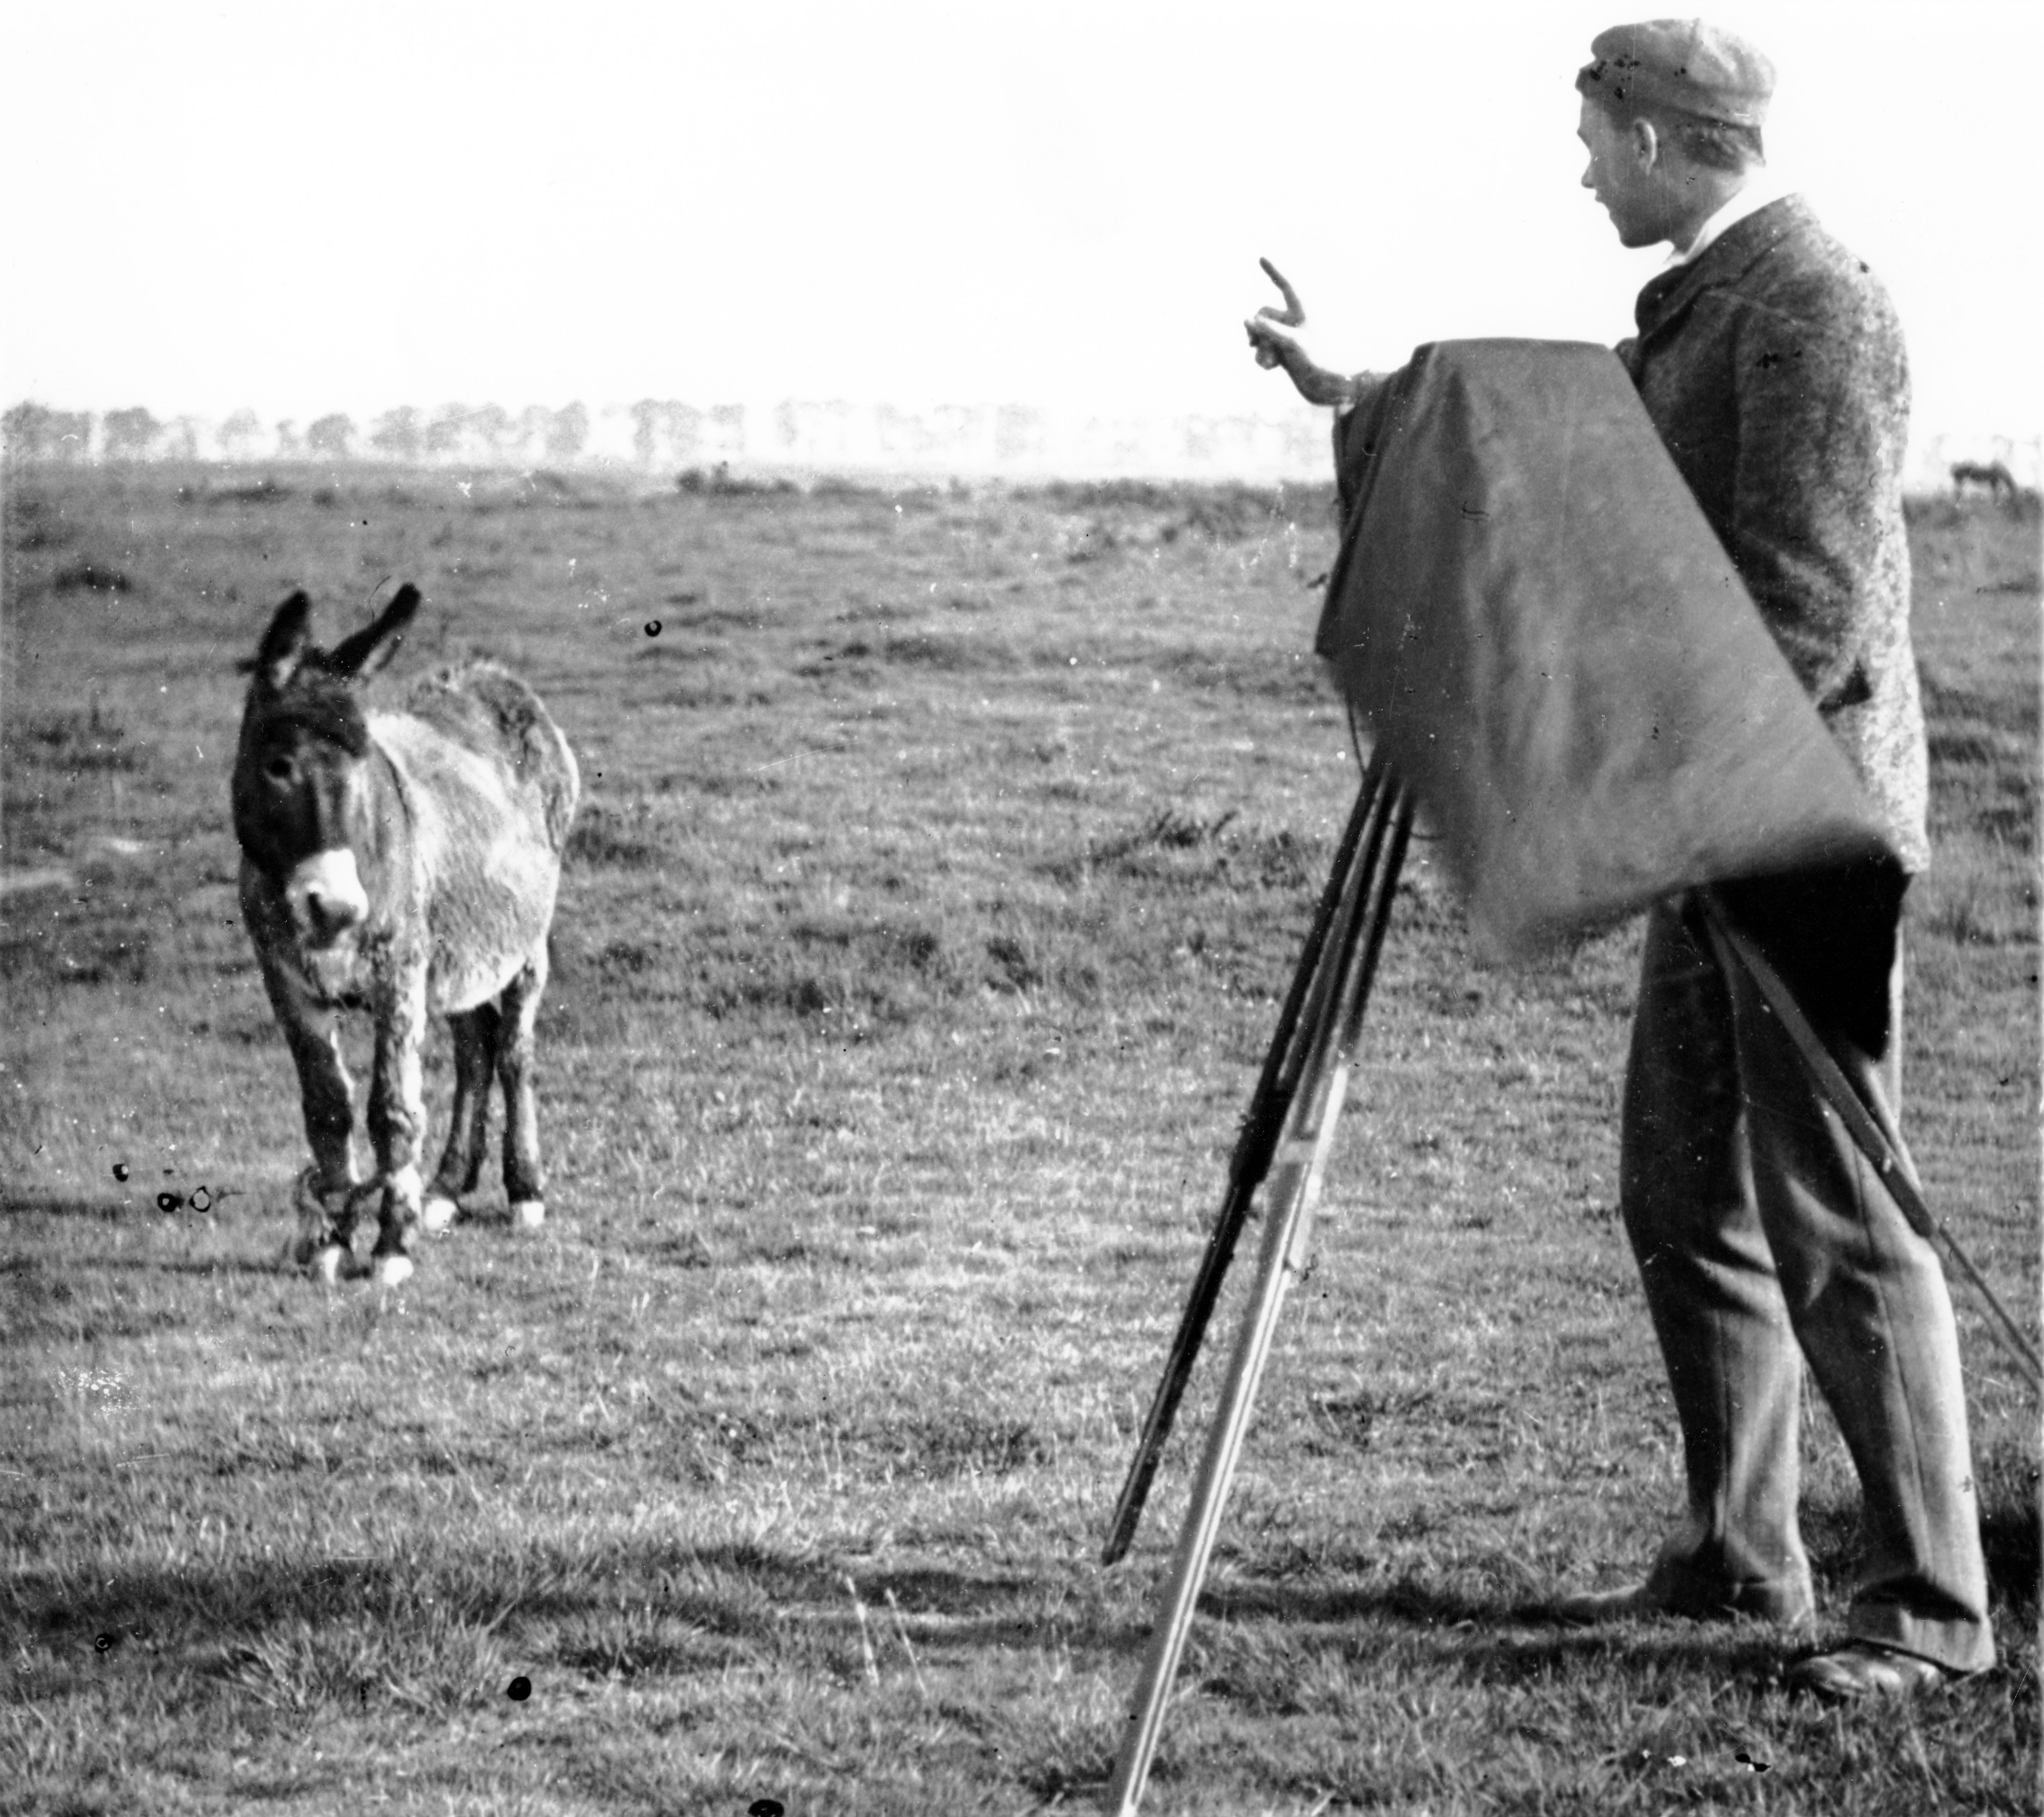 Photographer on Mitcham Common